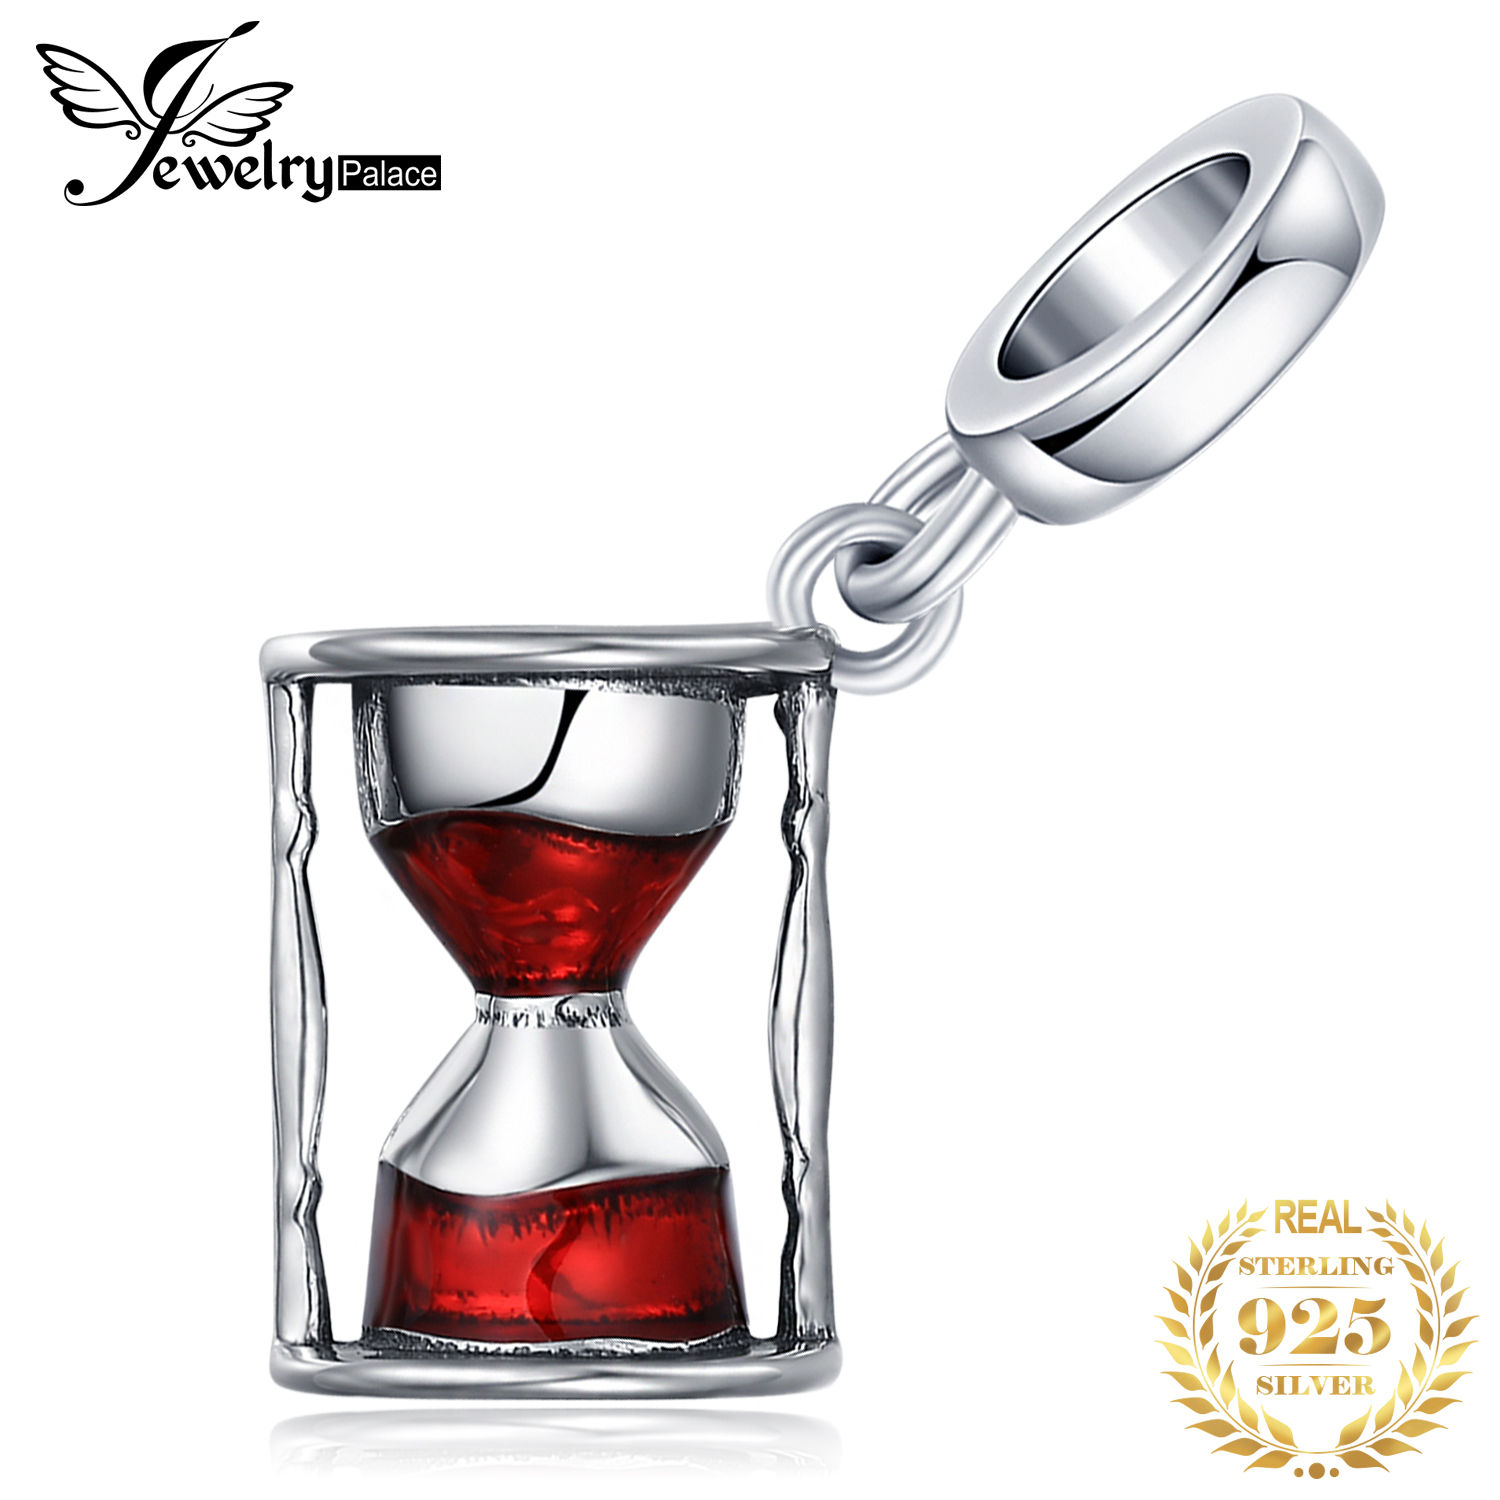 JewelryPalace Hourglass 925 Sterling Silver Beads Charms Silver 925 Original For Bracelet Silver 925 Original For Jewelry Making